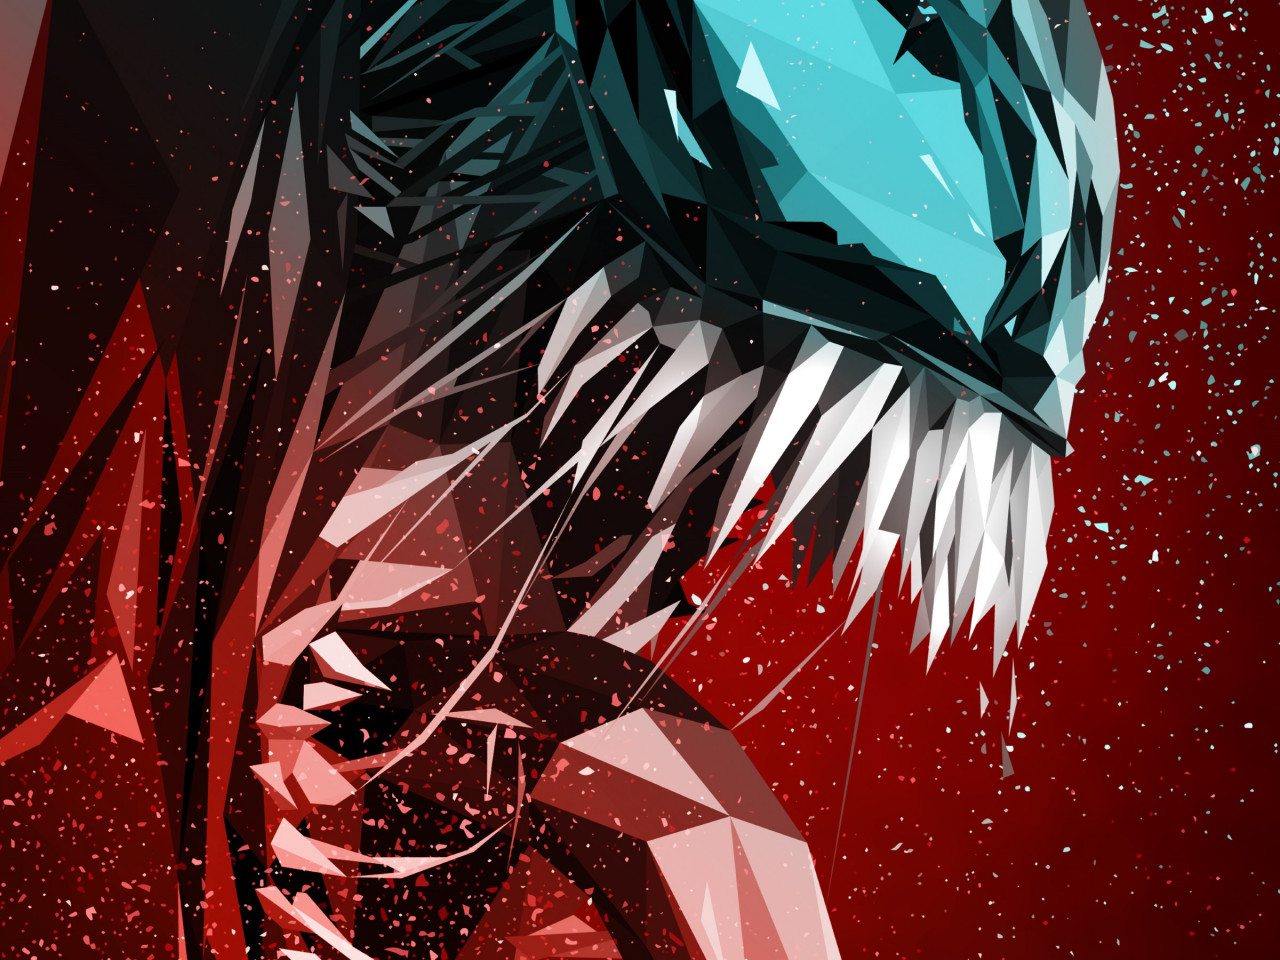 Venom digital art poster wallpaper 1280x960